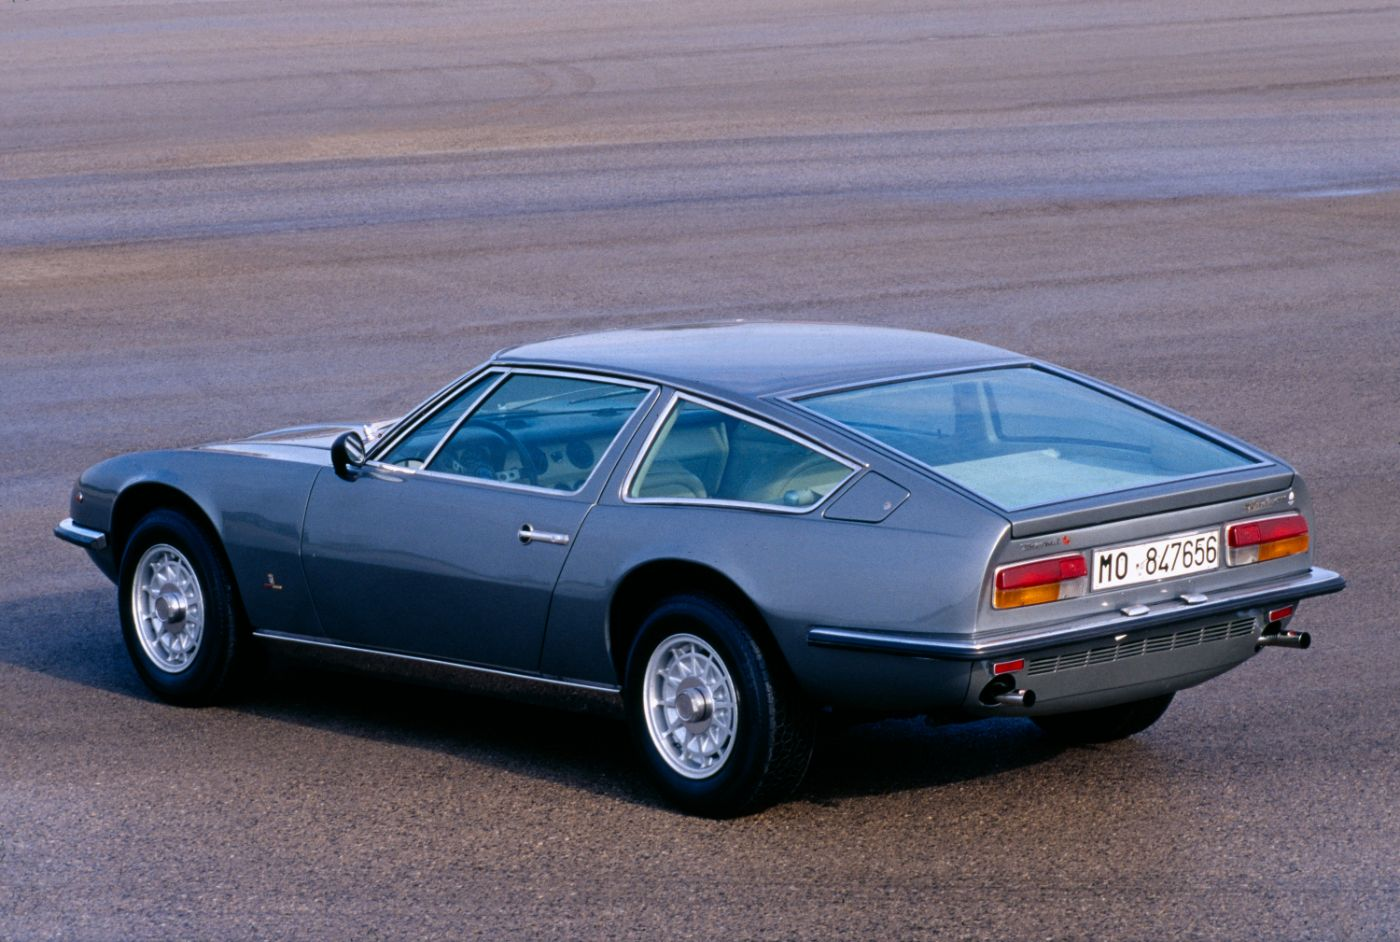 1969 Maserati Indy - exterior view of the classic 4-seater coupe